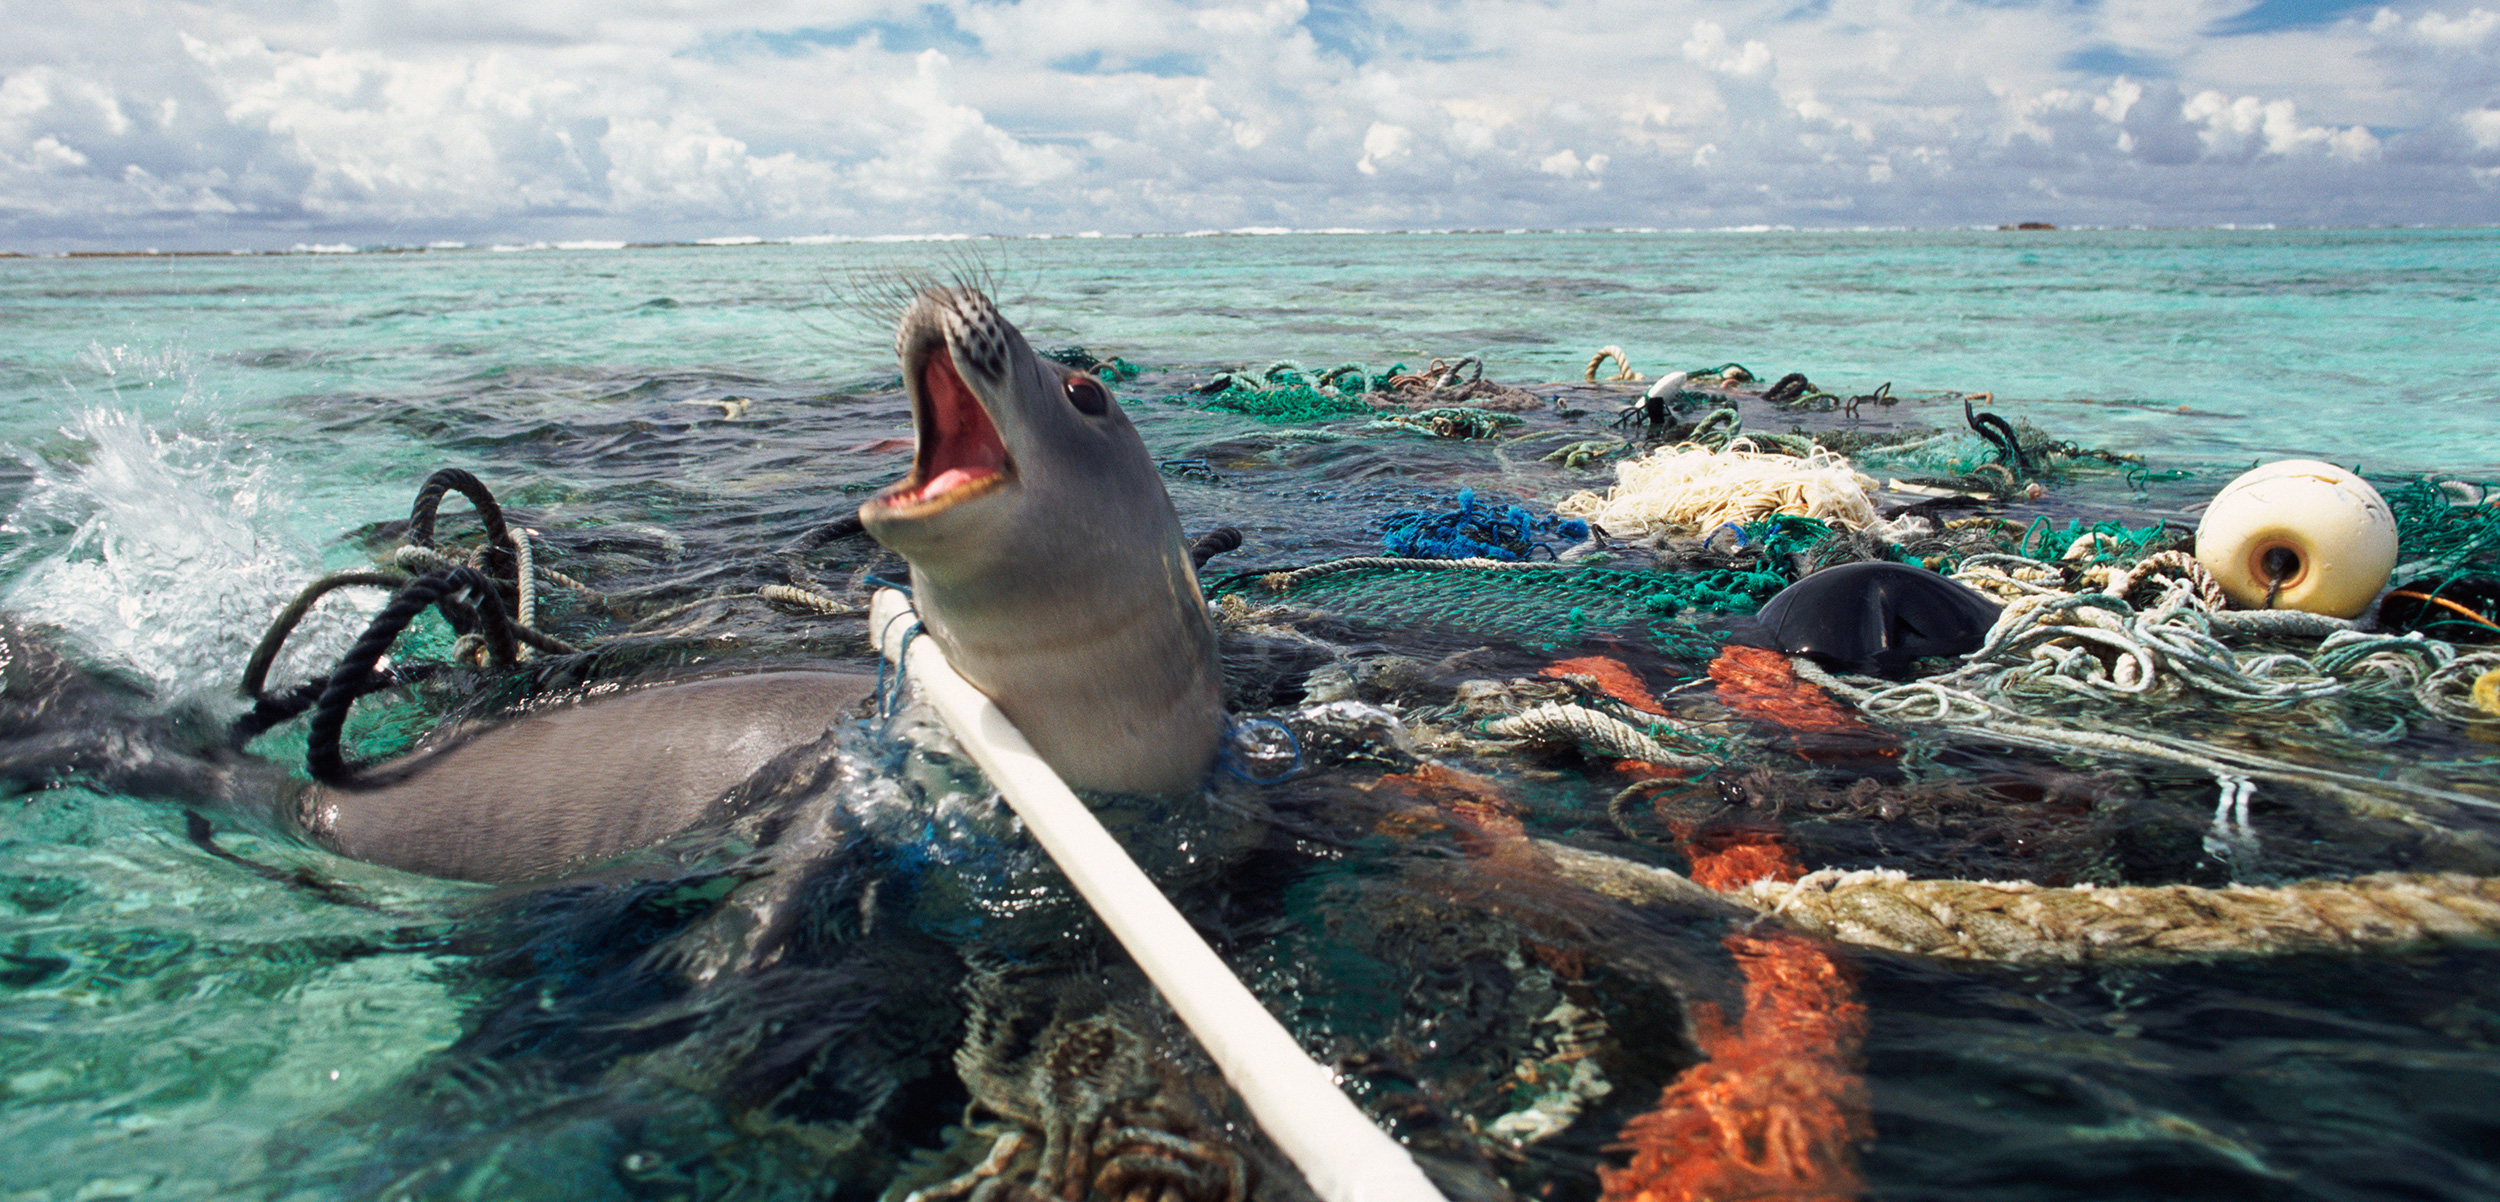 After snapping this photo in the Kure Atoll in the Pacific, the photographer freed this monk seal caught in abandoned fishing tackle. Photo by Michael Pitts/naturepl.com